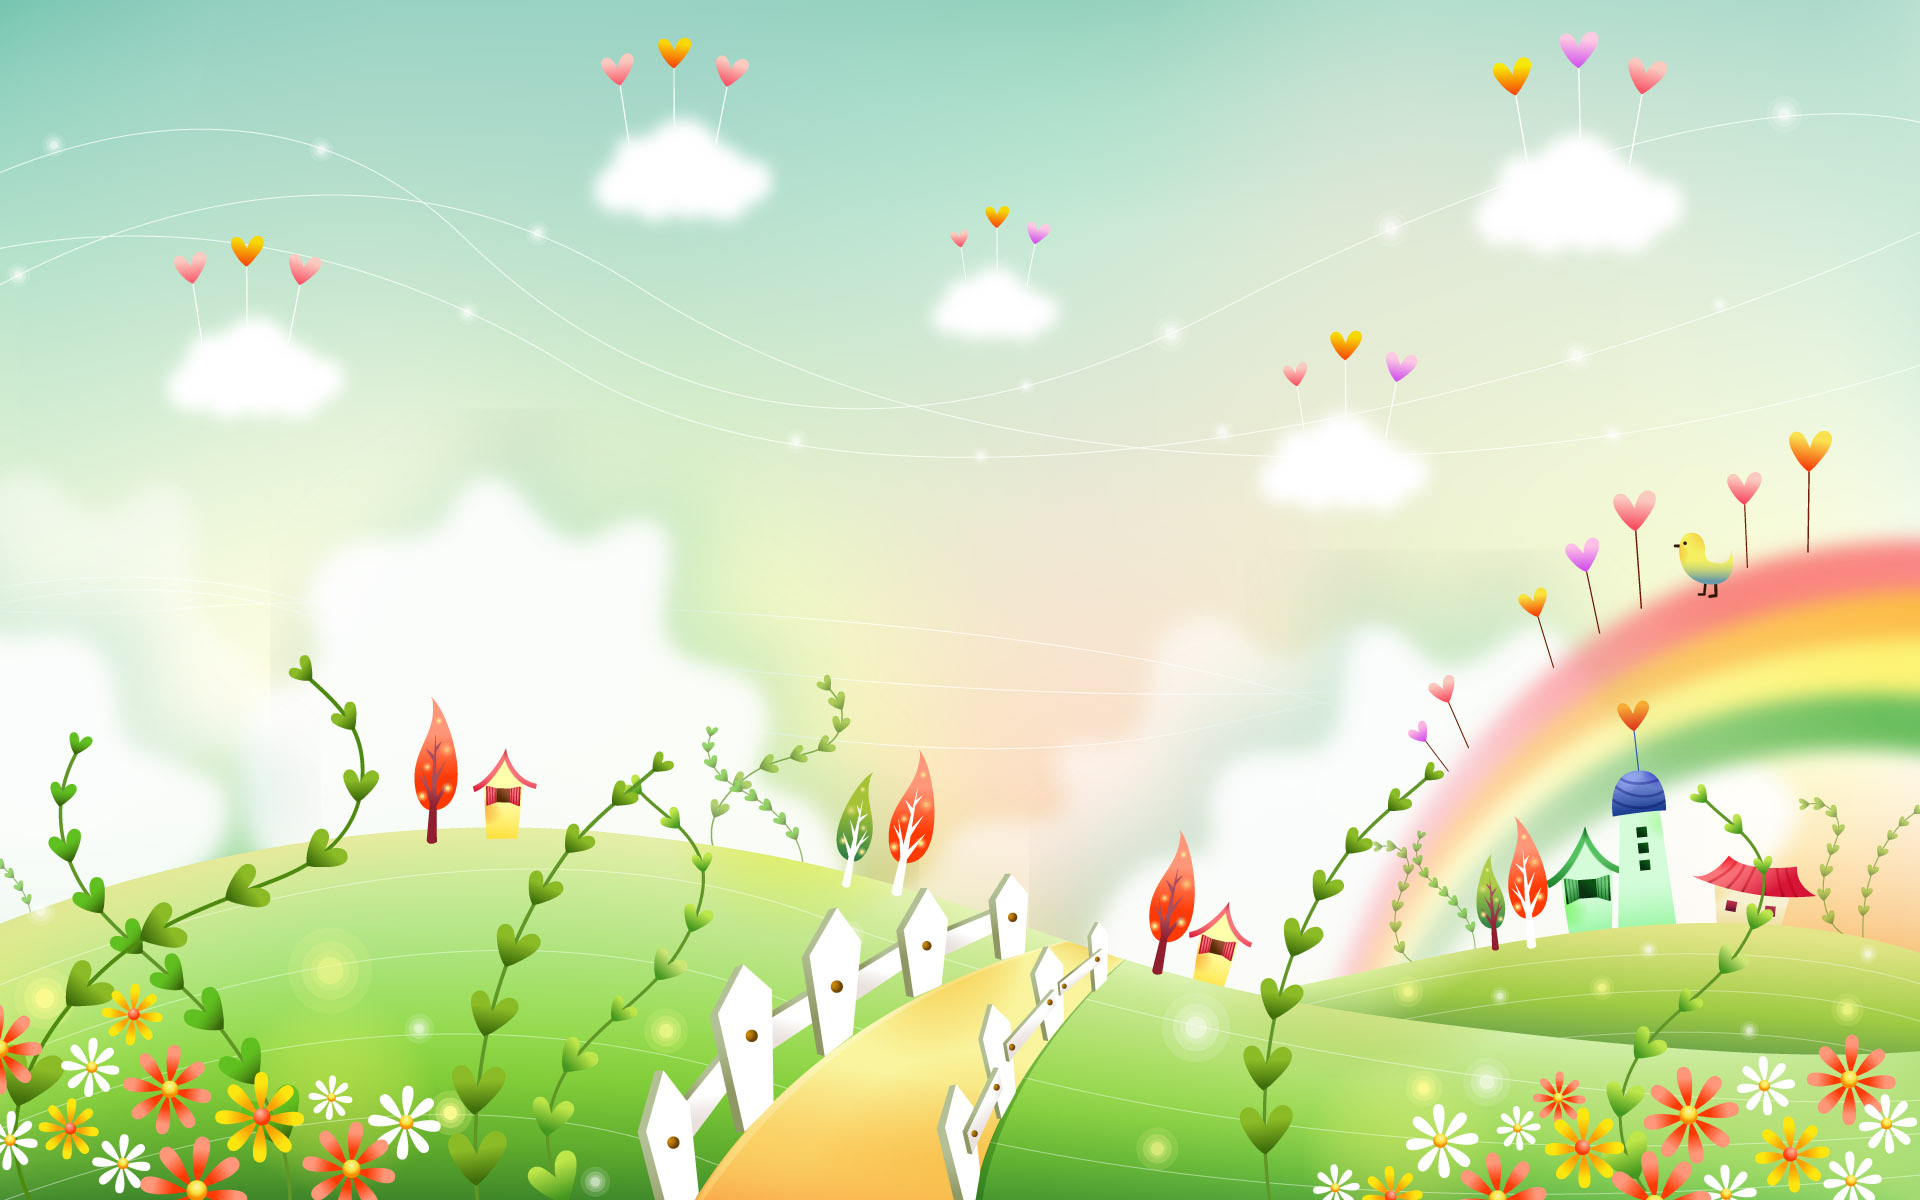 Clipart Background & Background Clip Art Images.